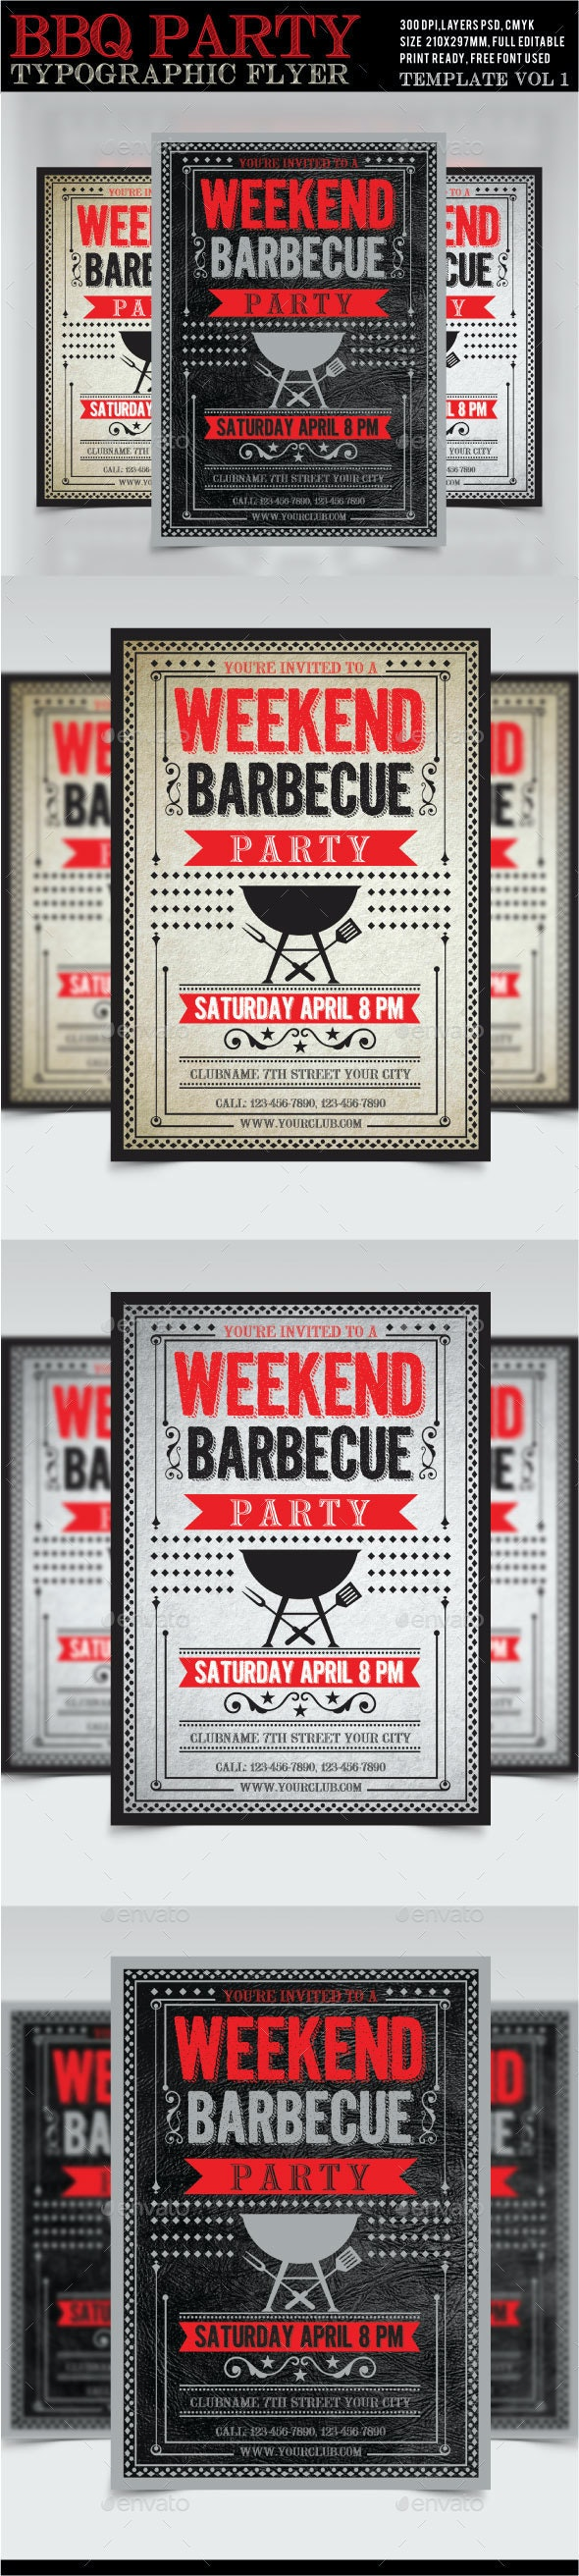 BBQ Weekend Party Flyer /Poster 1 - Restaurant Flyers